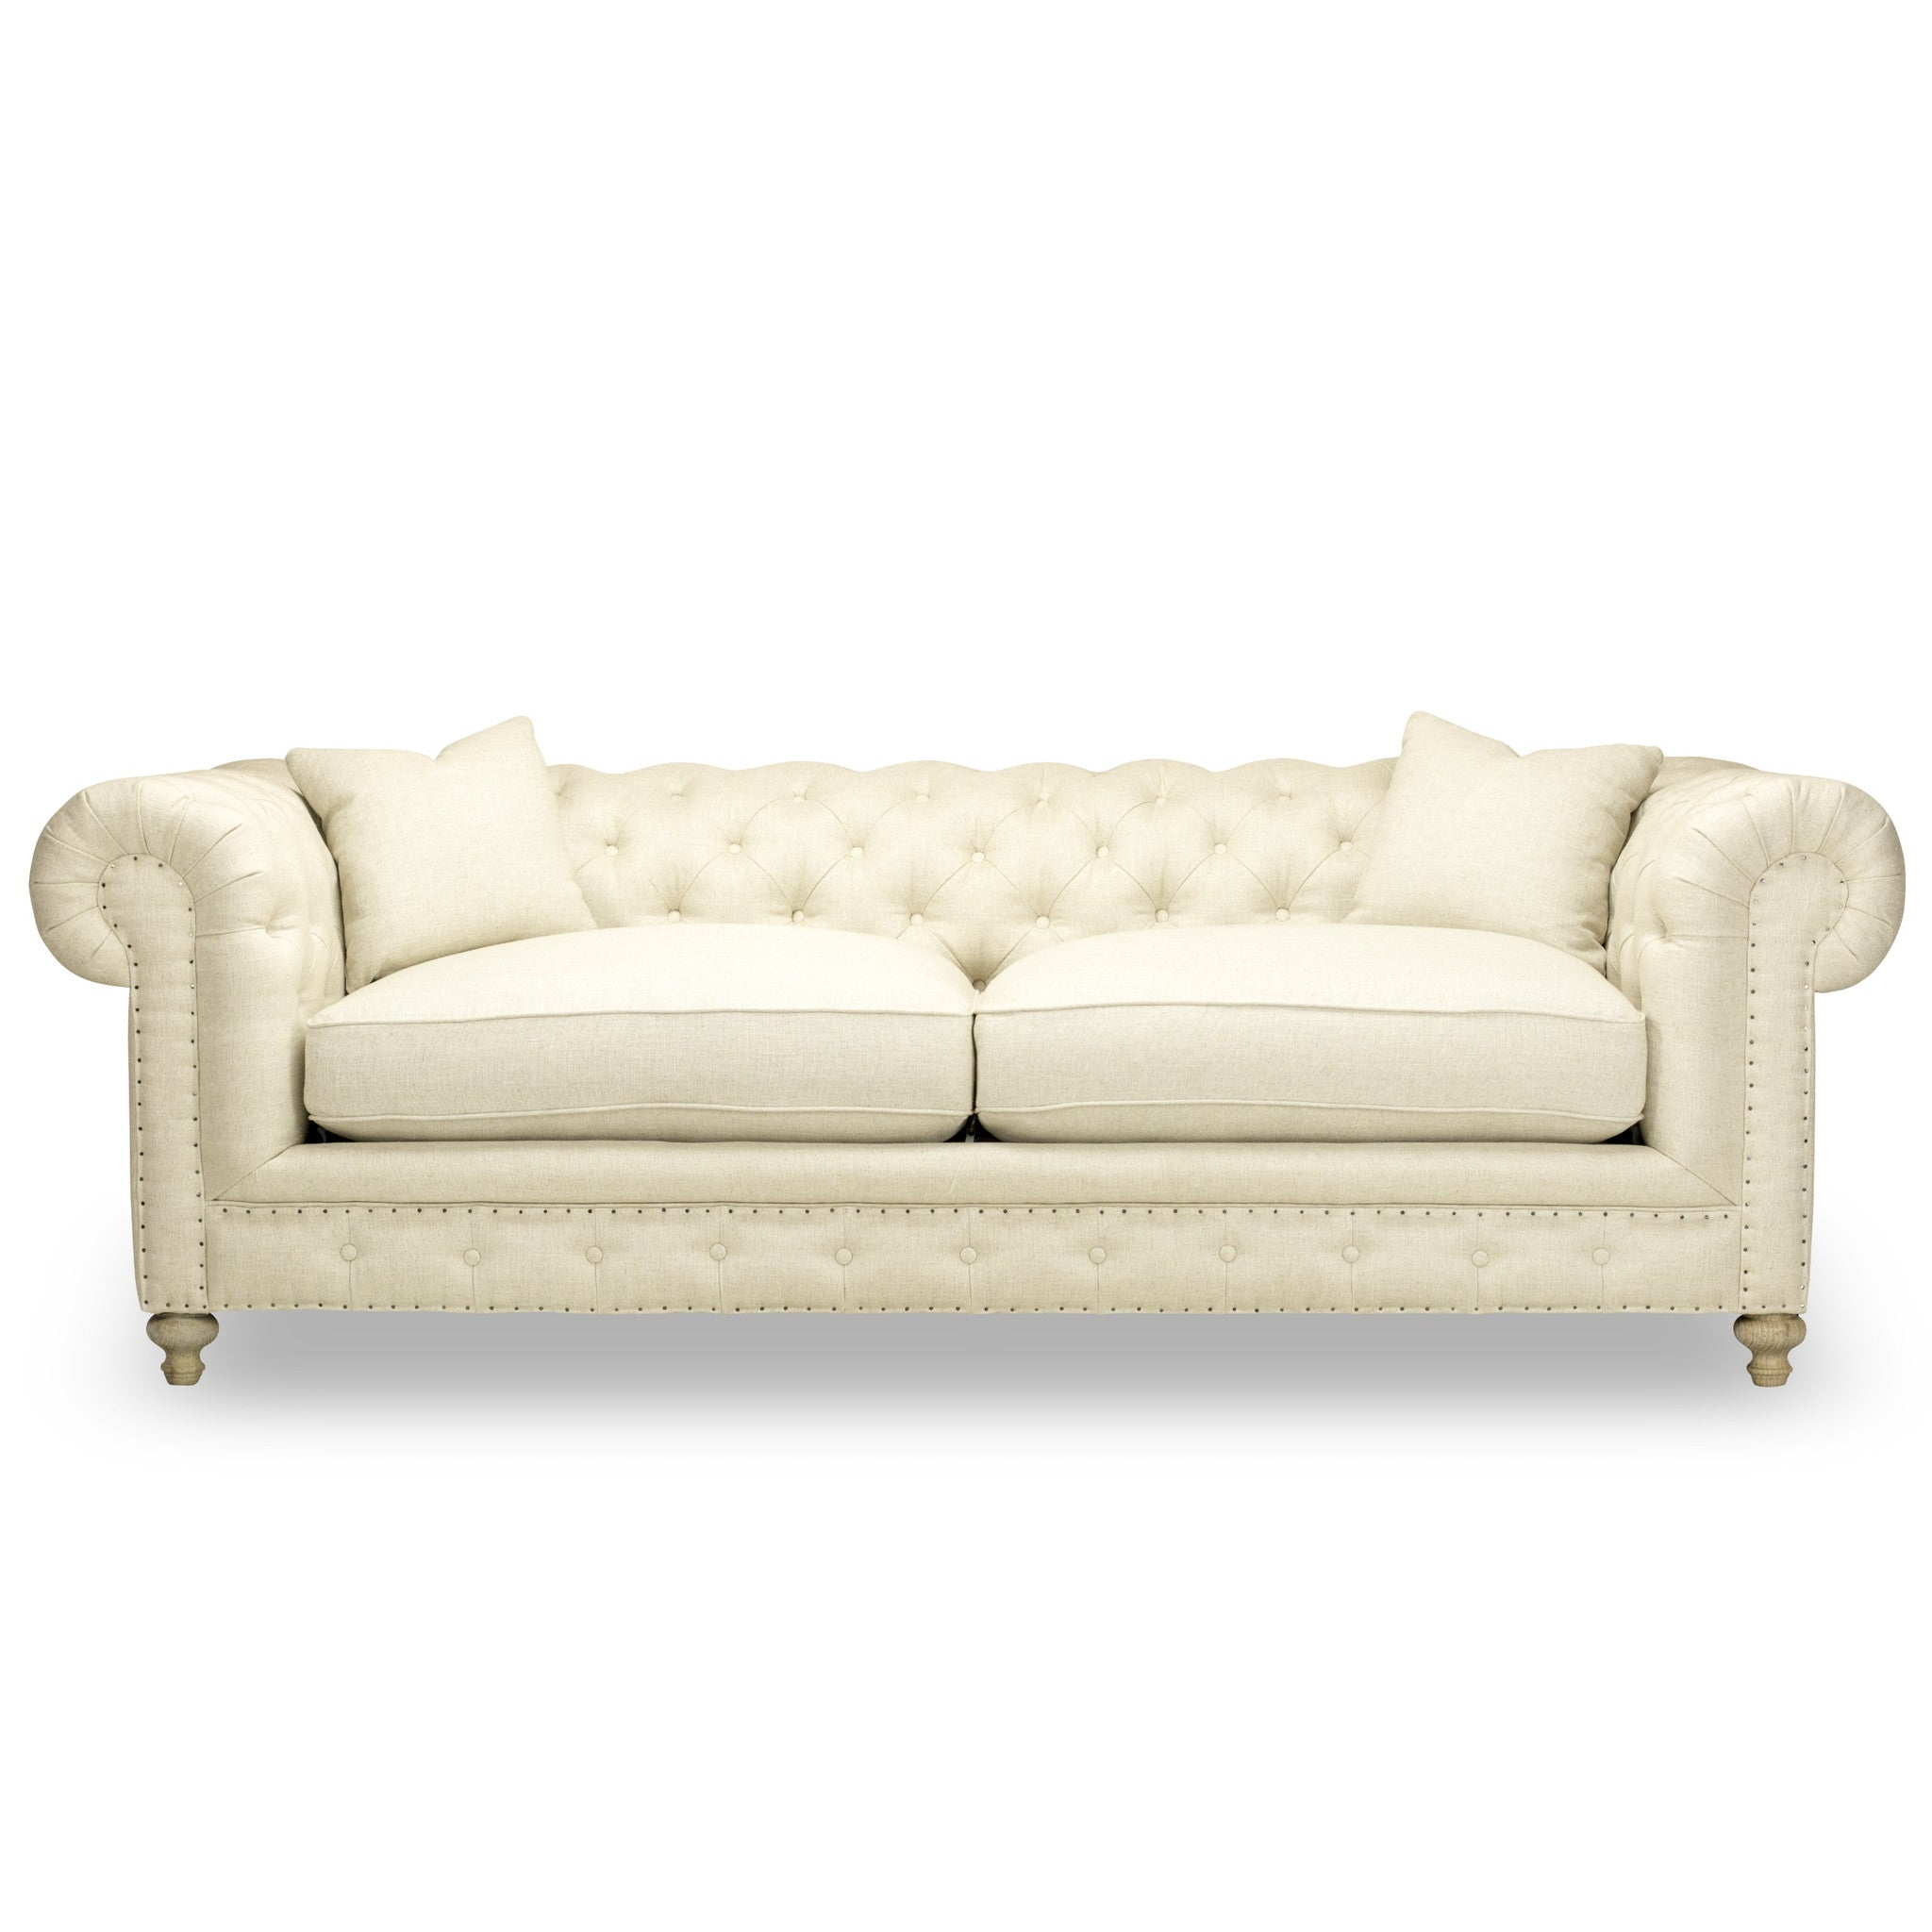 GREENWICH TUFTED SOFA Natural Ecru